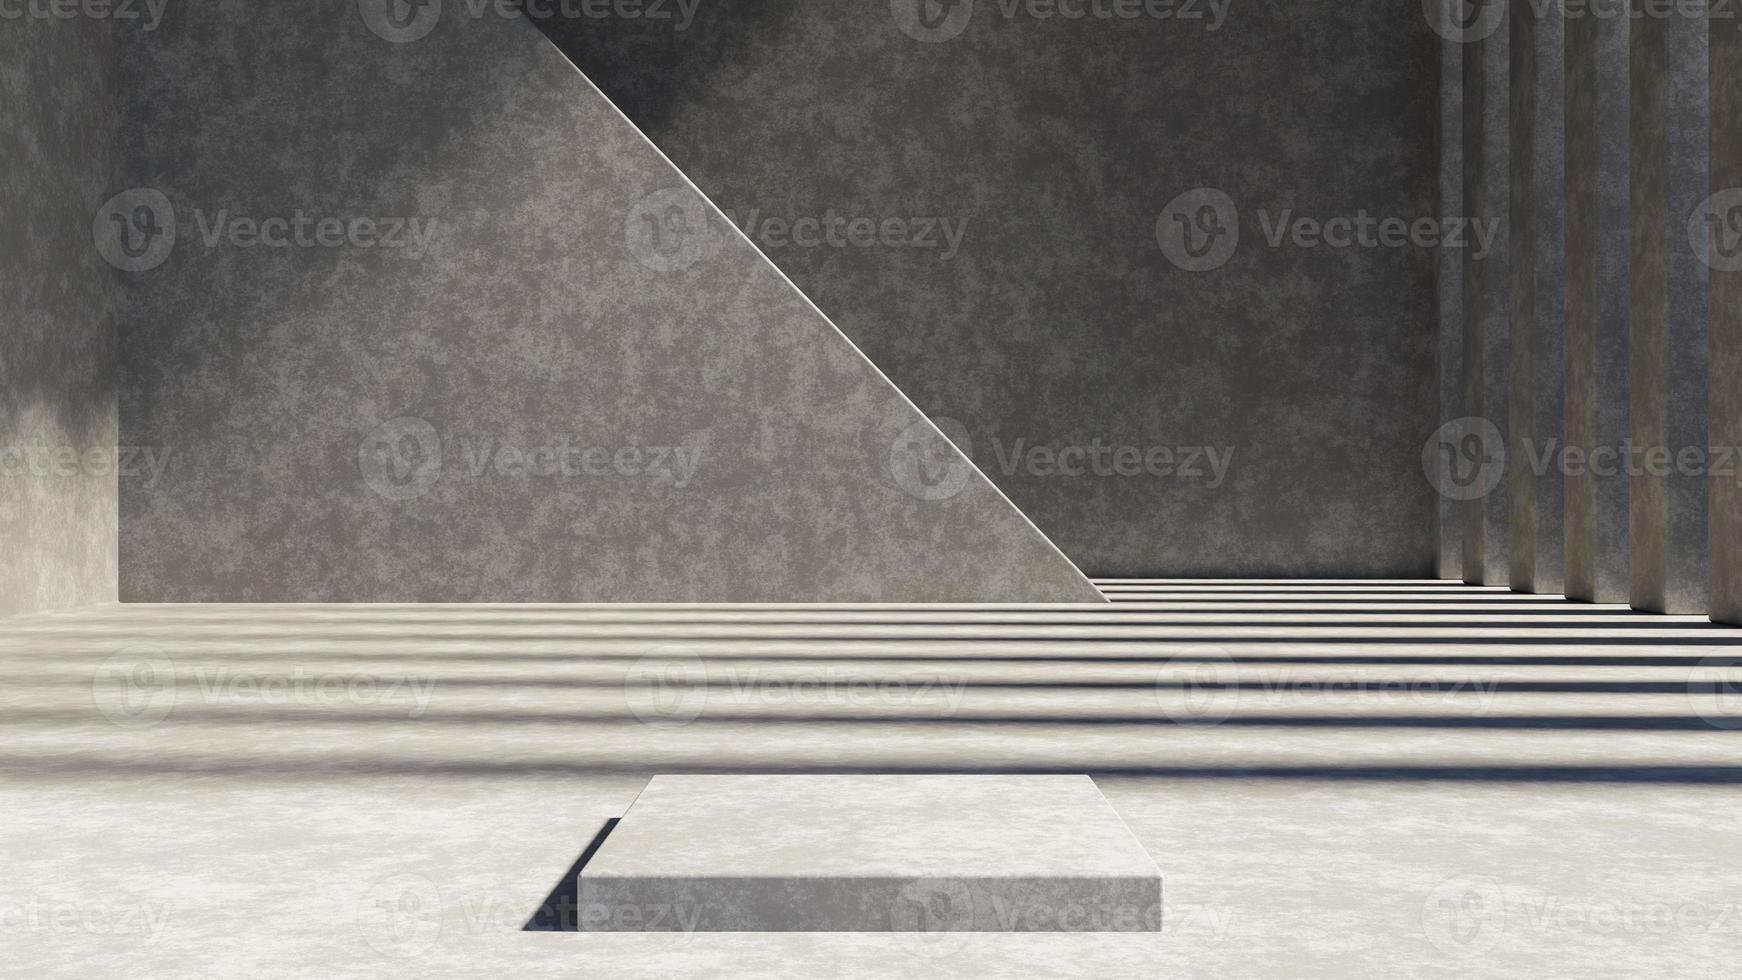 Abstract background, mock up scene for product display photo